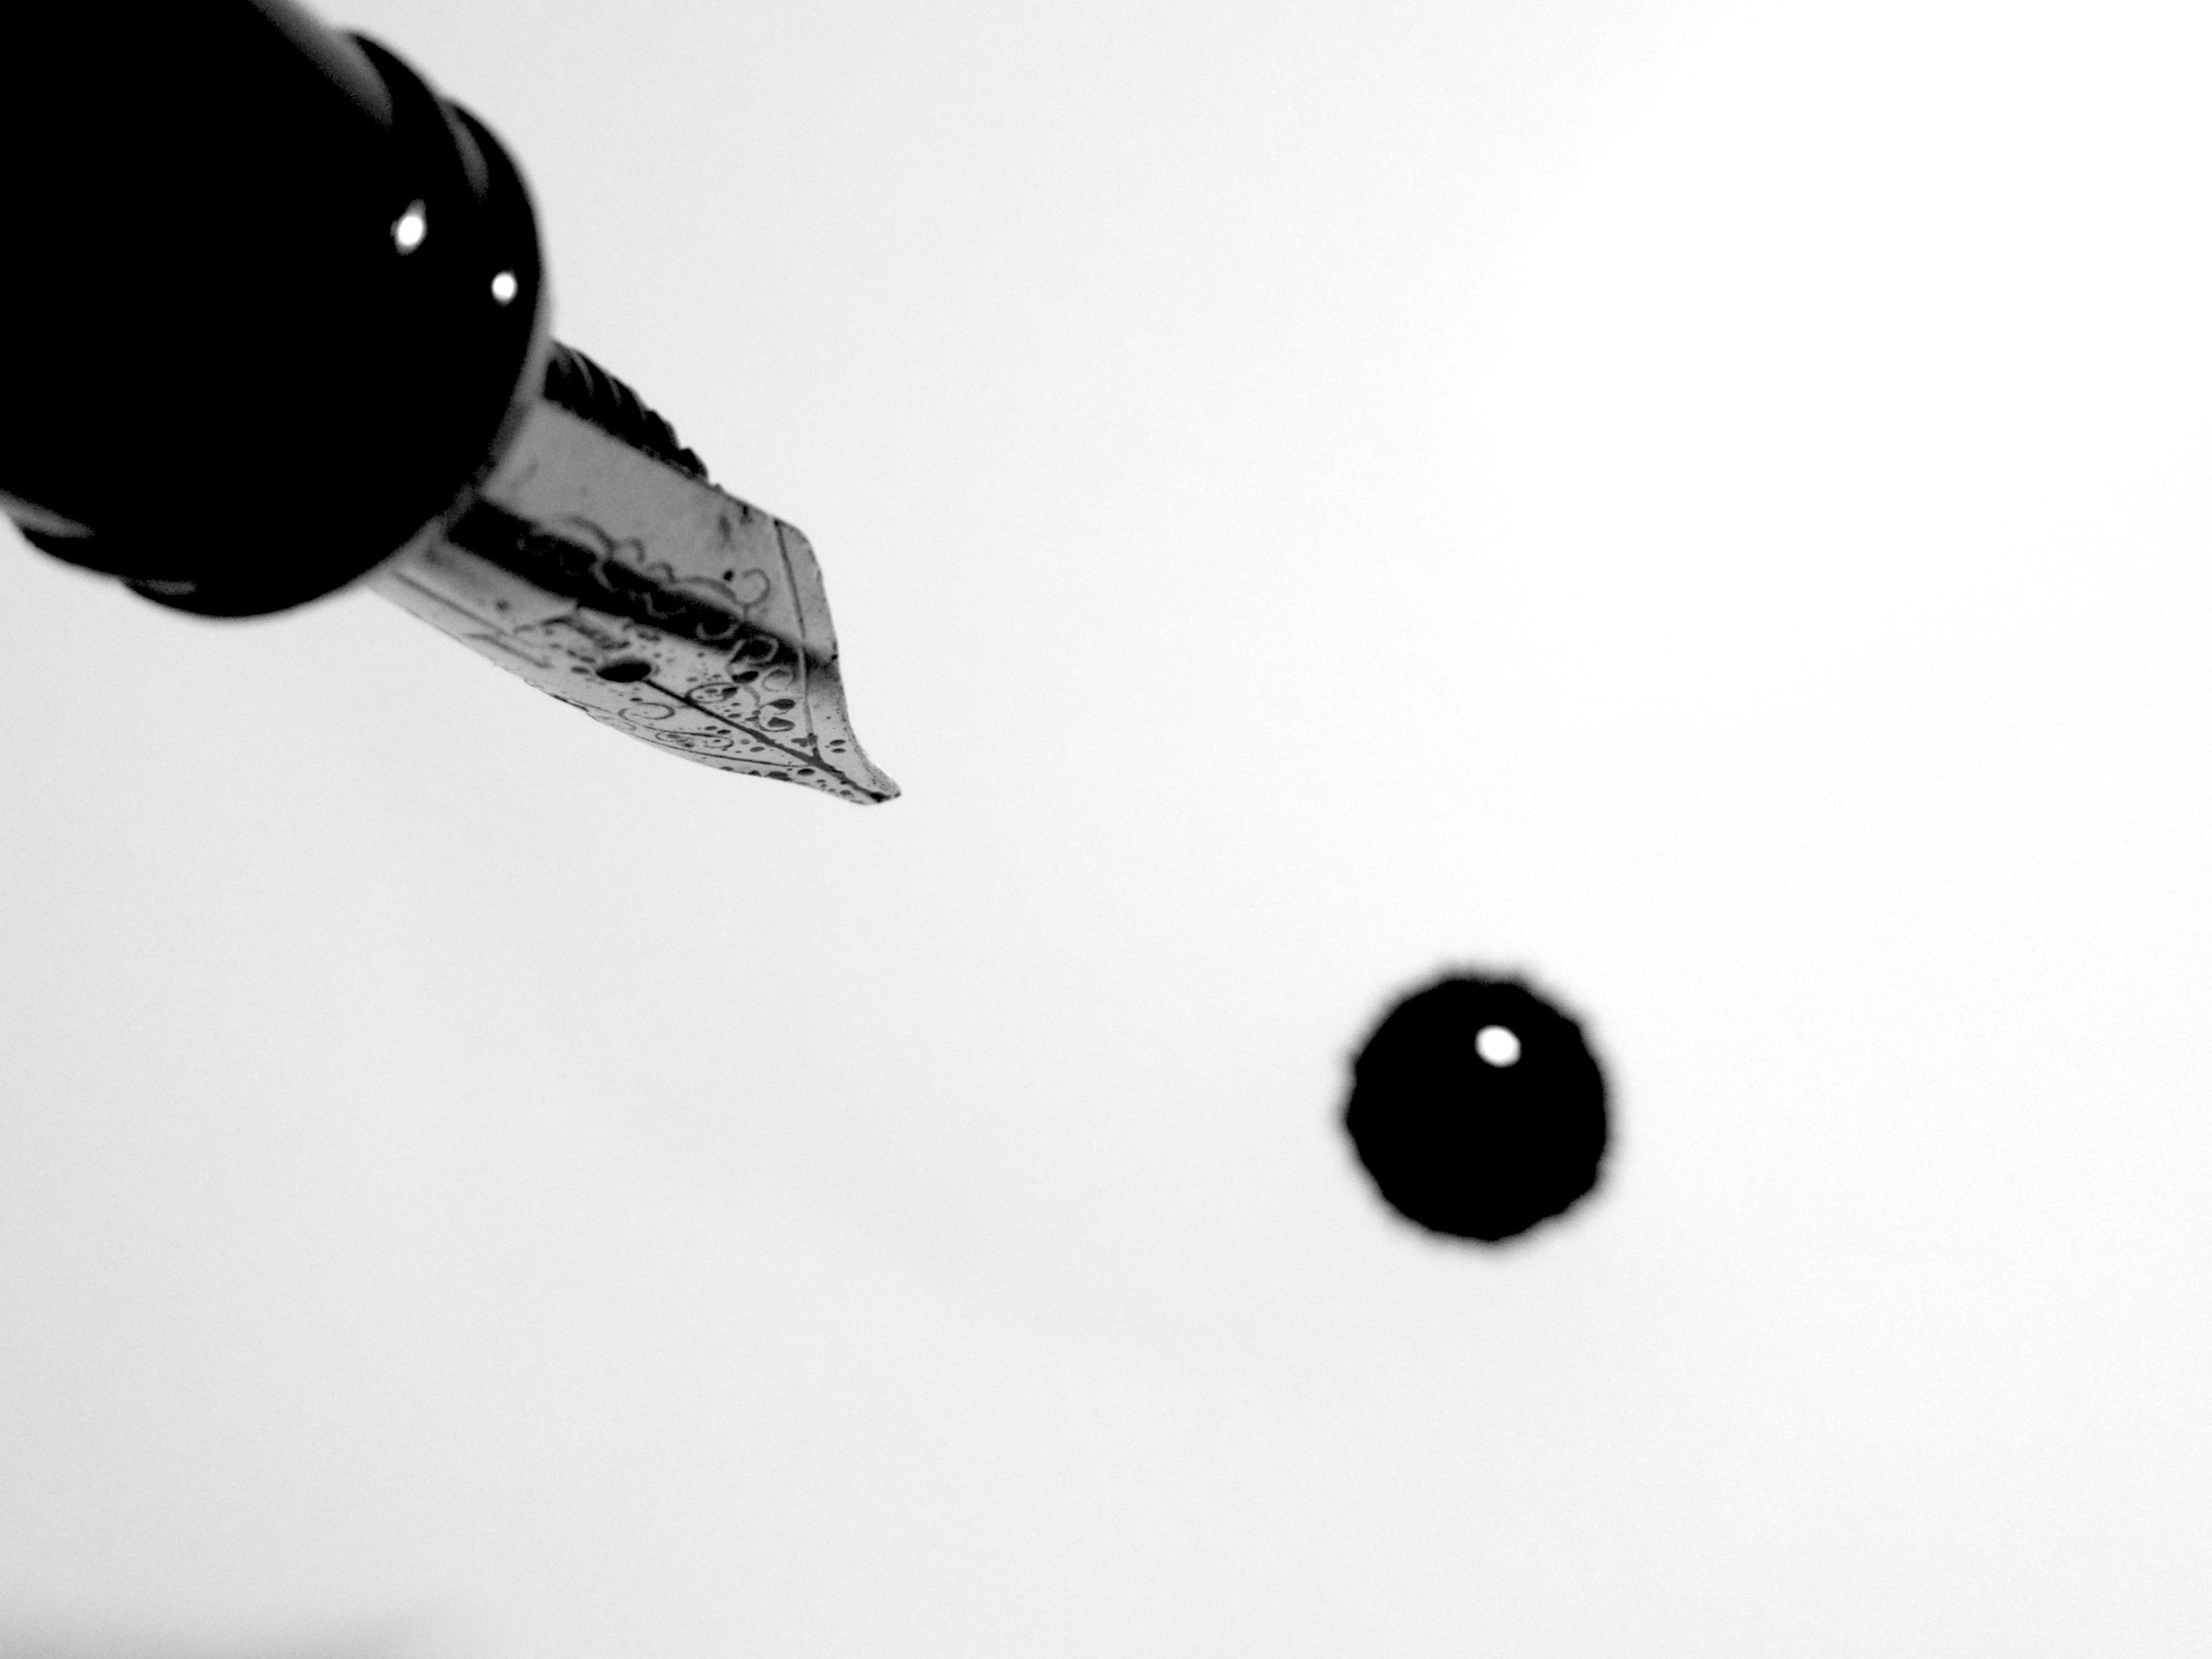 Picture of fountain pen dripping ink.